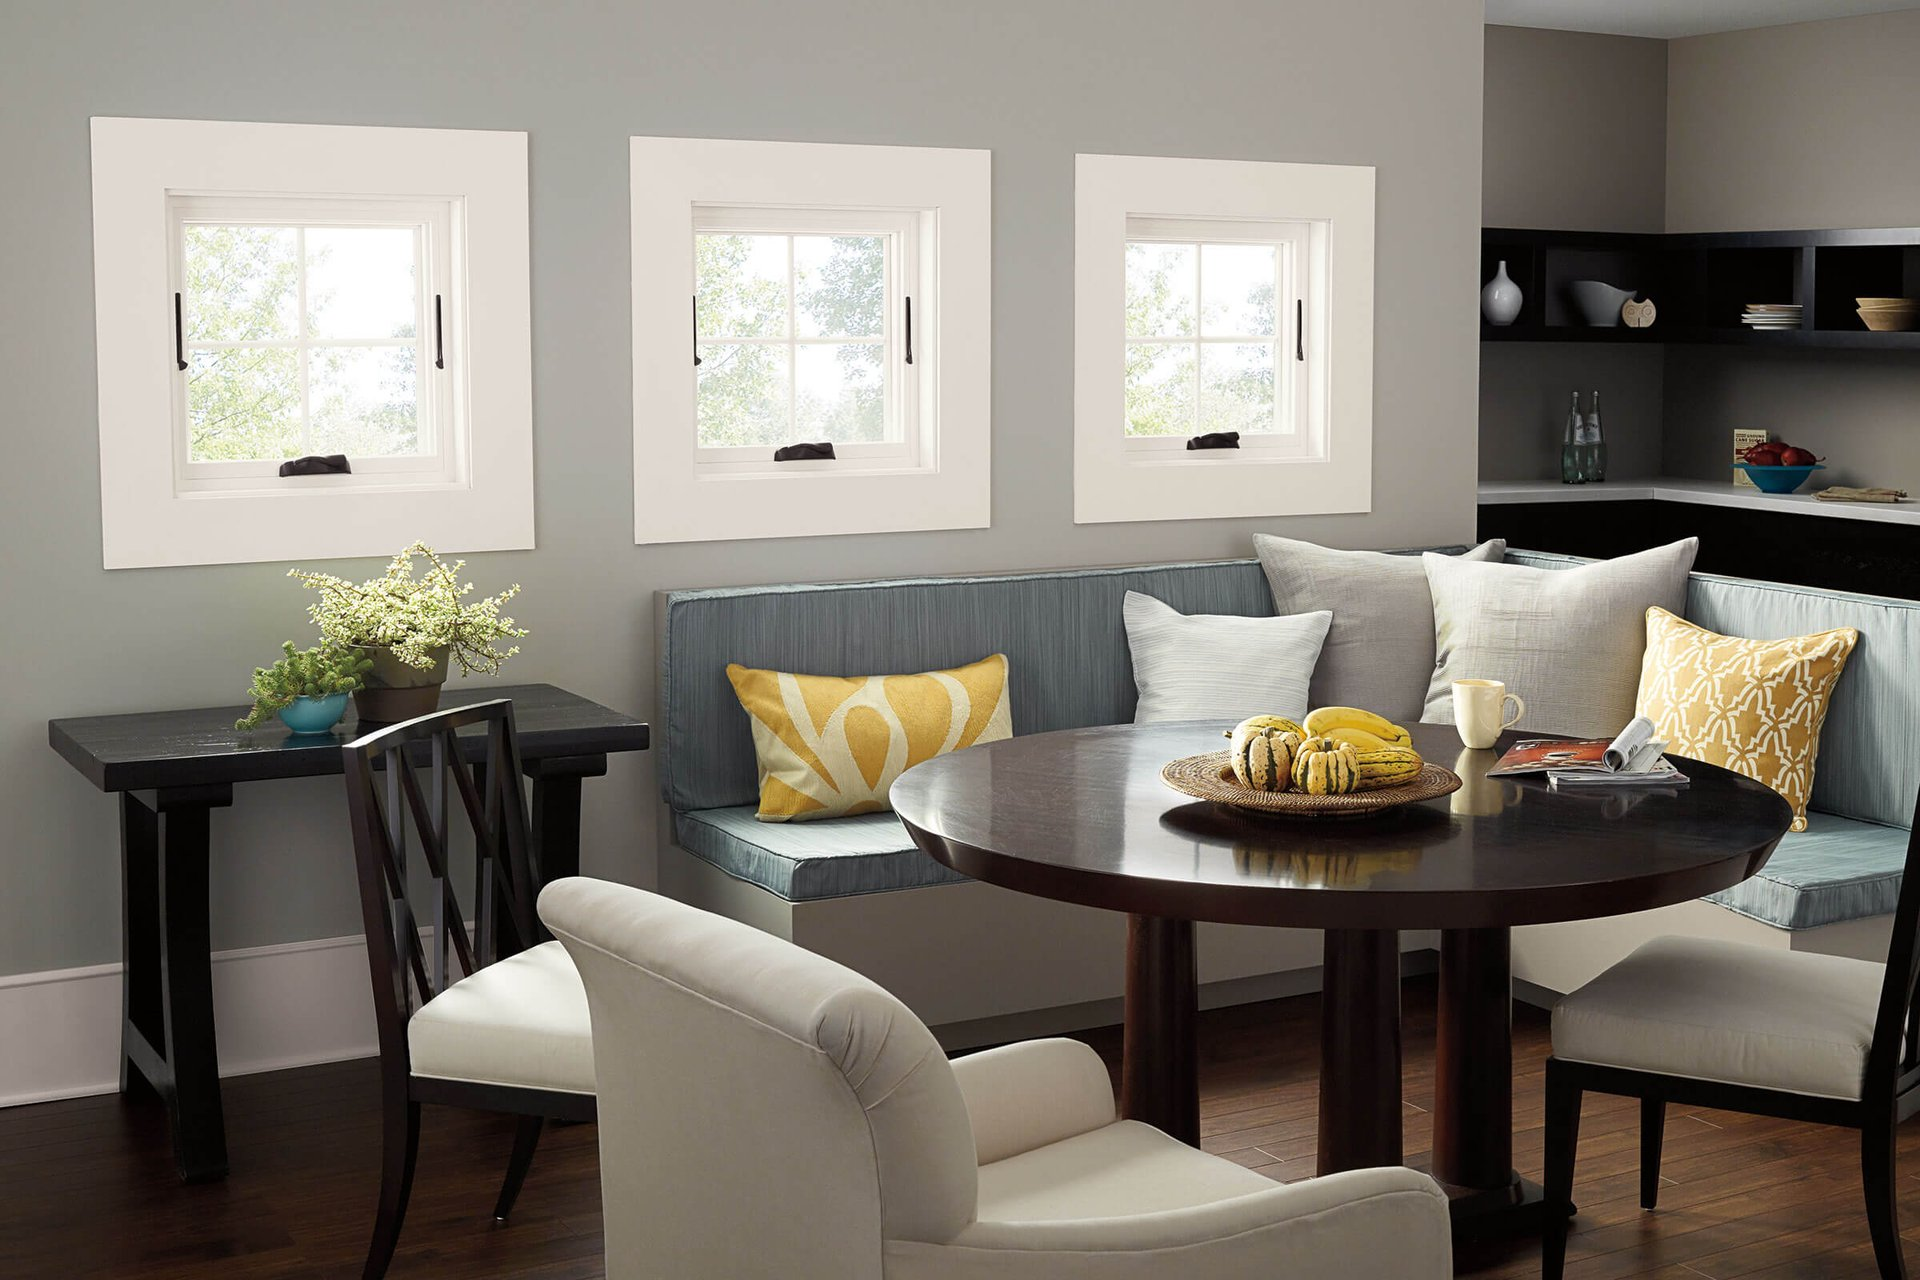 Dining Room With Three Marvin Essential Awning Windows In Stone White